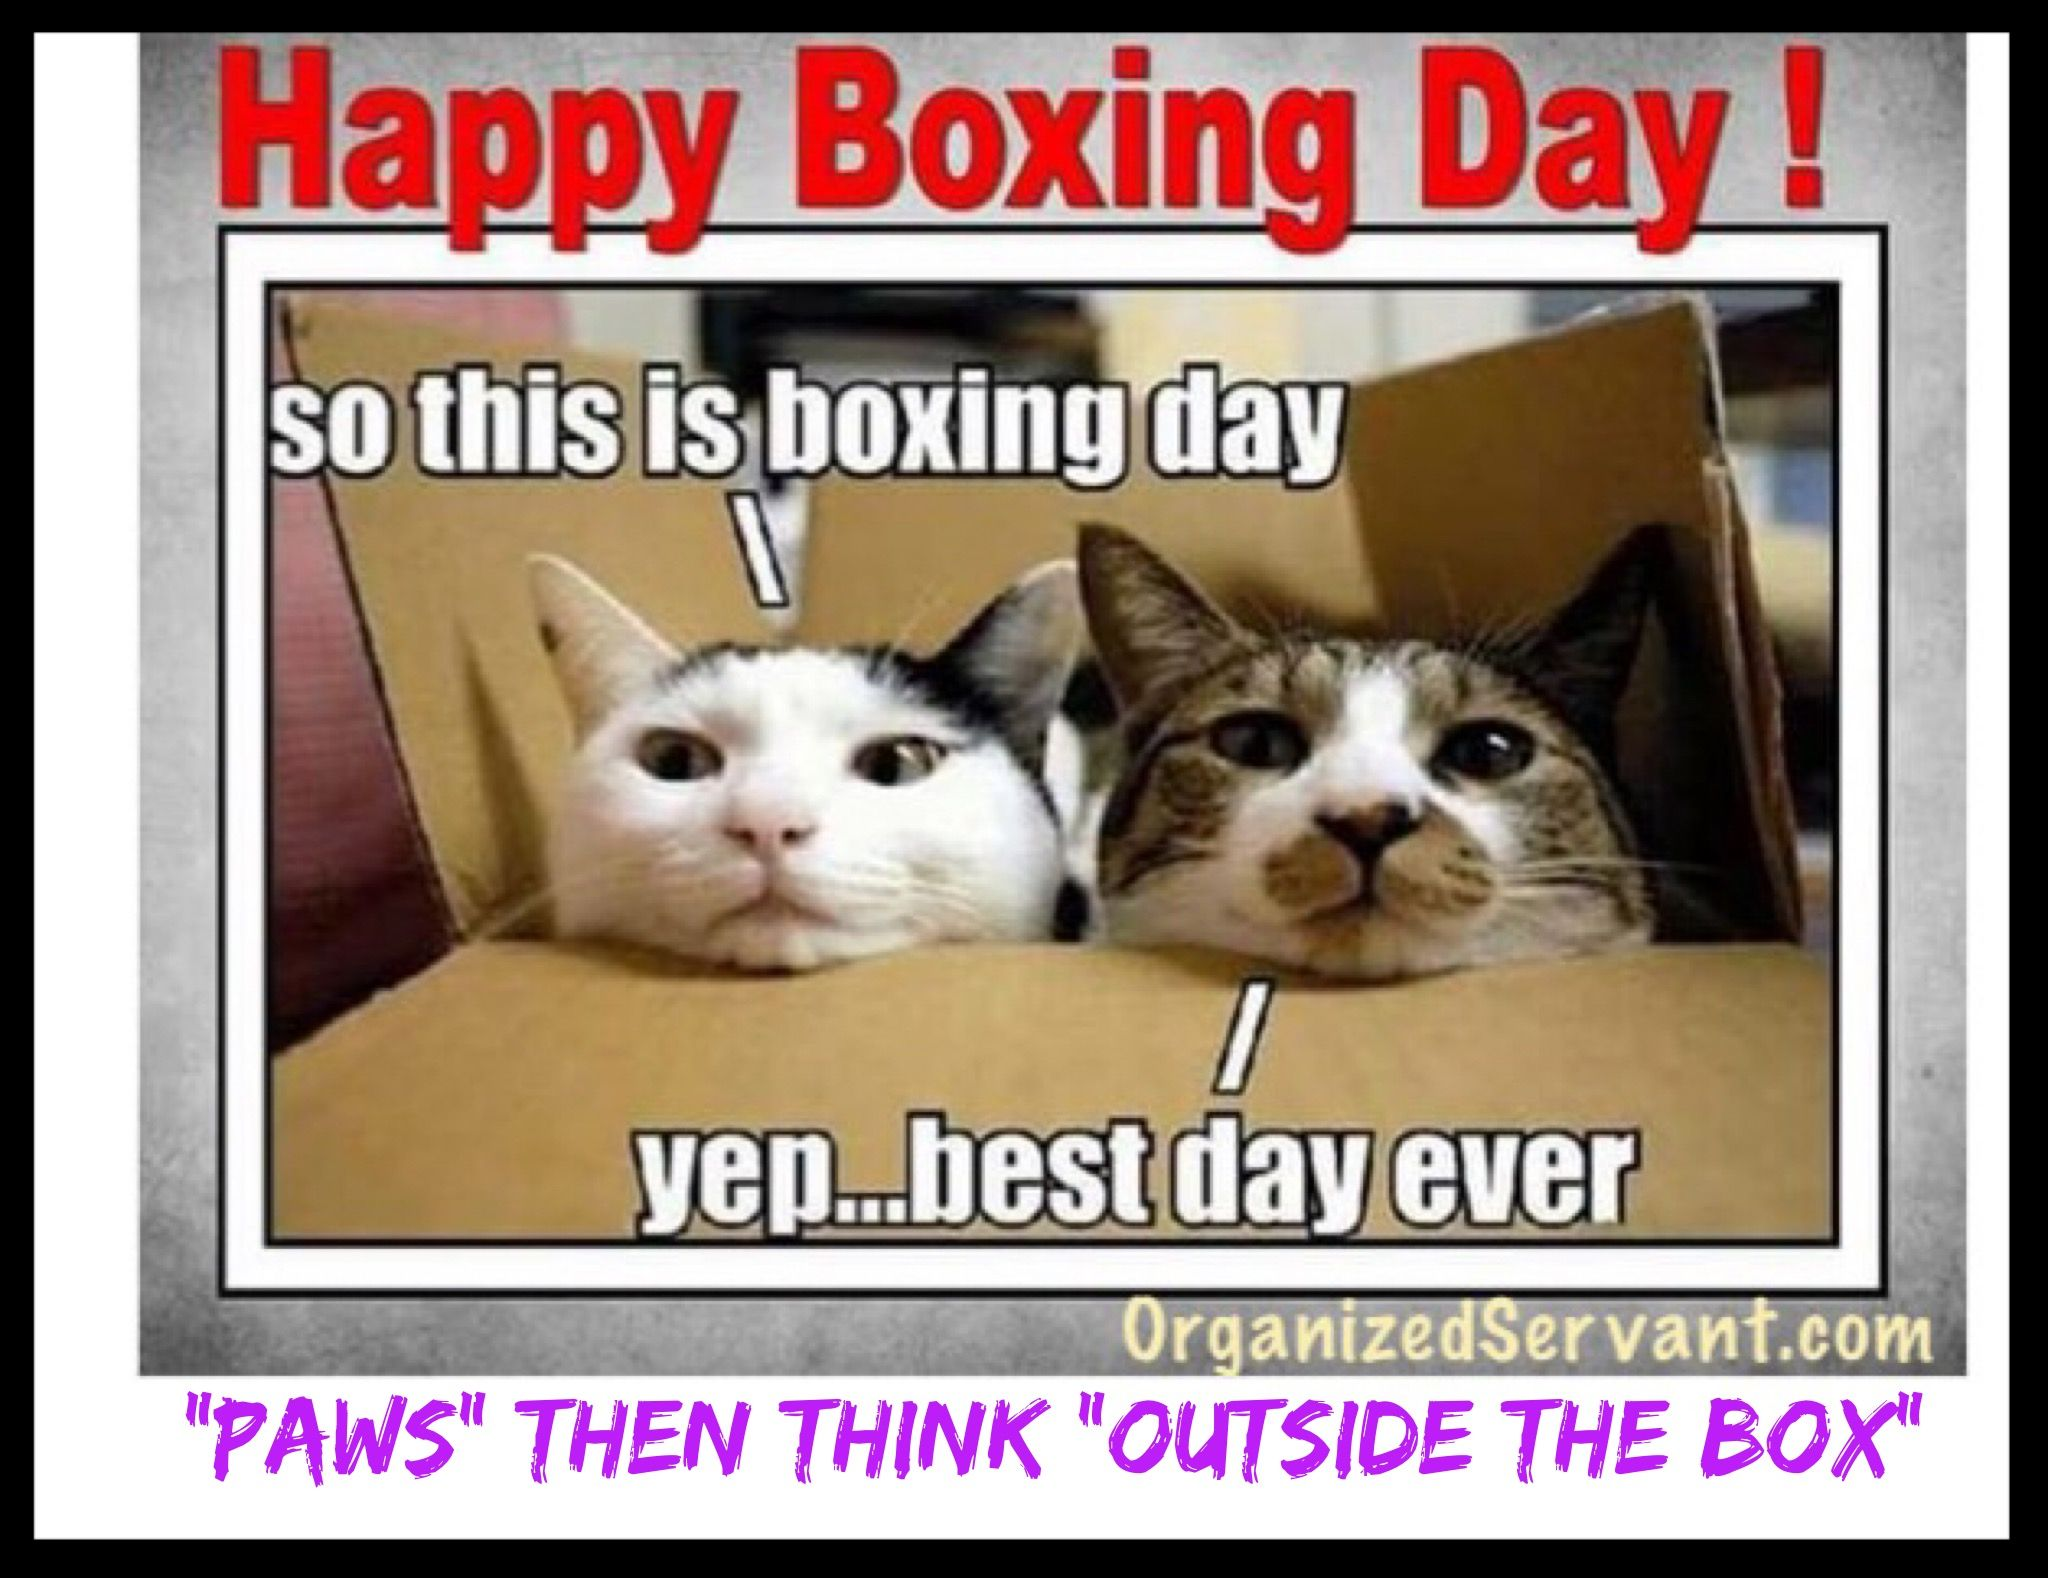 Happy Boxing Day Paws Then Think Outside The Box Organizedservant Com Cat Day Funny Cat Pictures Cat Drinking